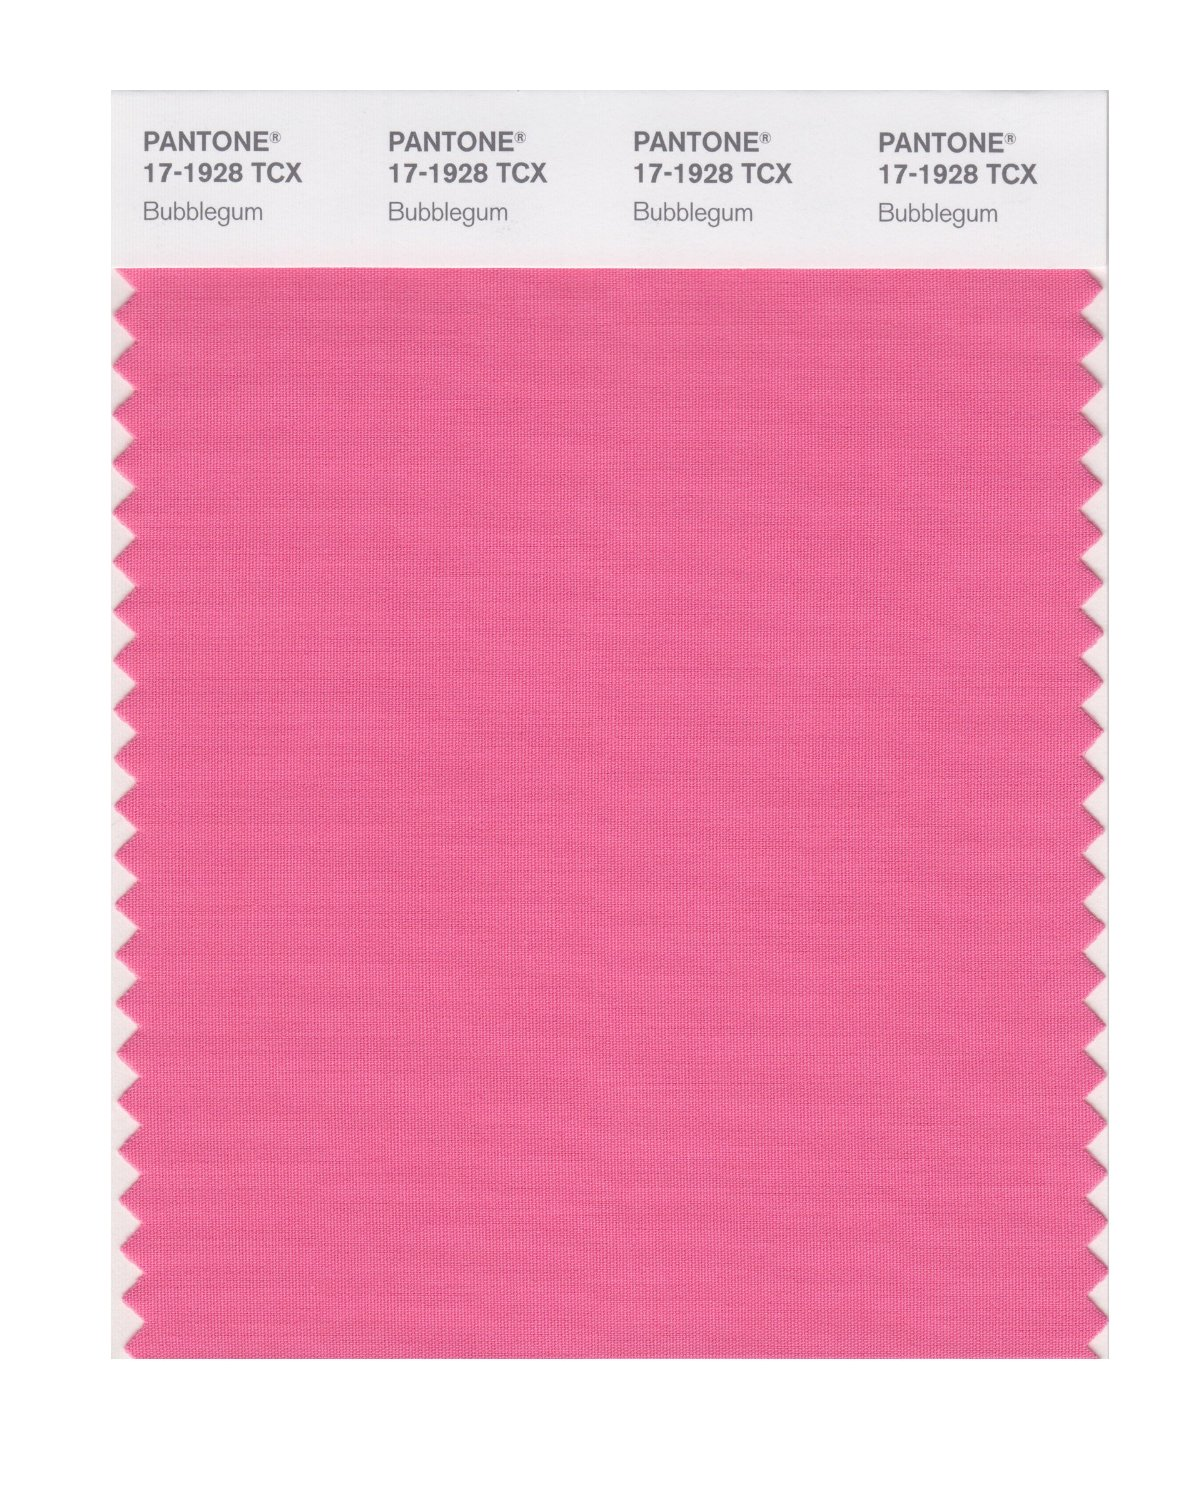 Pantone Smart Swatch 17-1928 Bubblegum